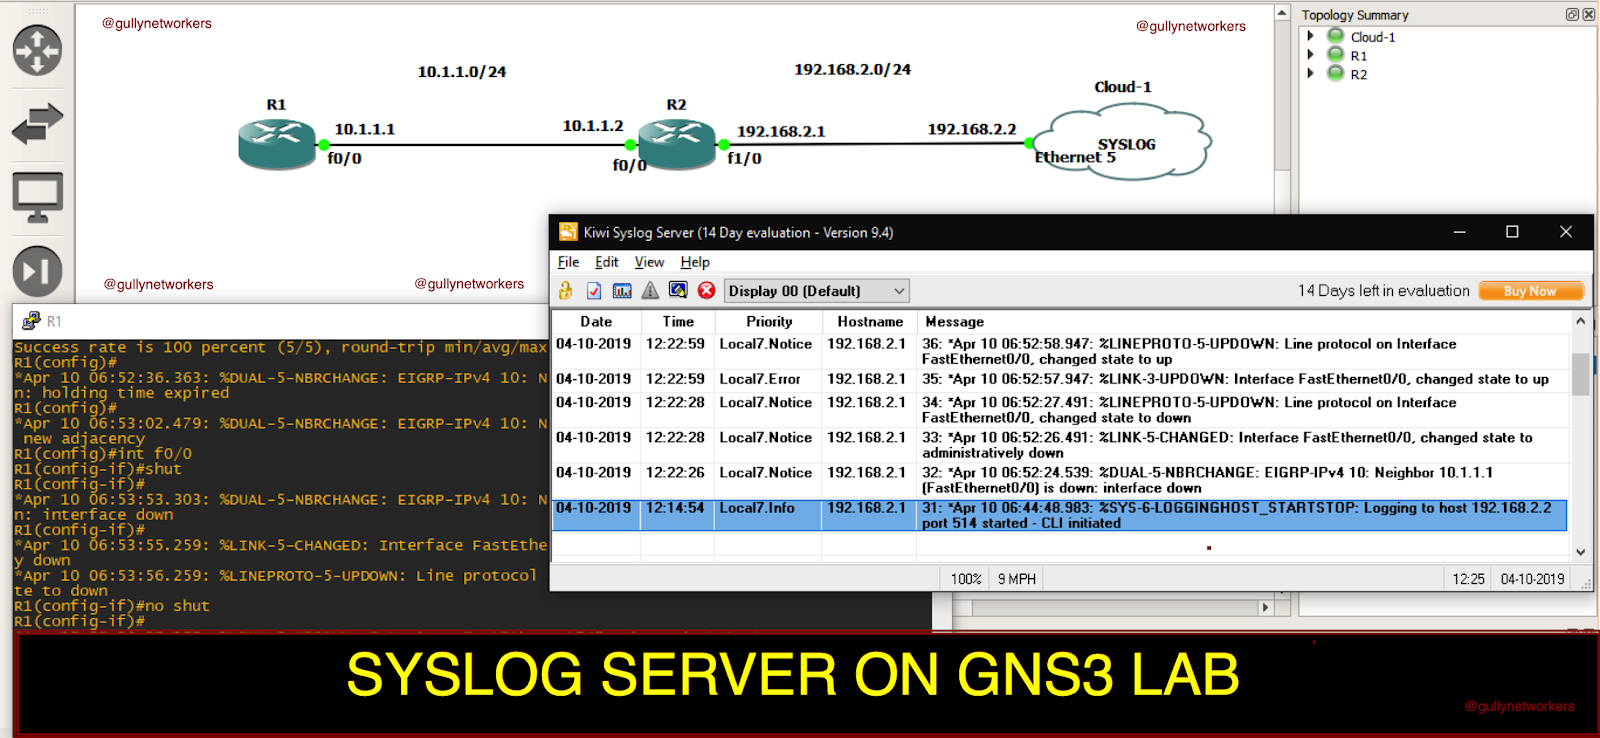 gullynetworkers: SYSLOG SERVER ON GNS3 LAB